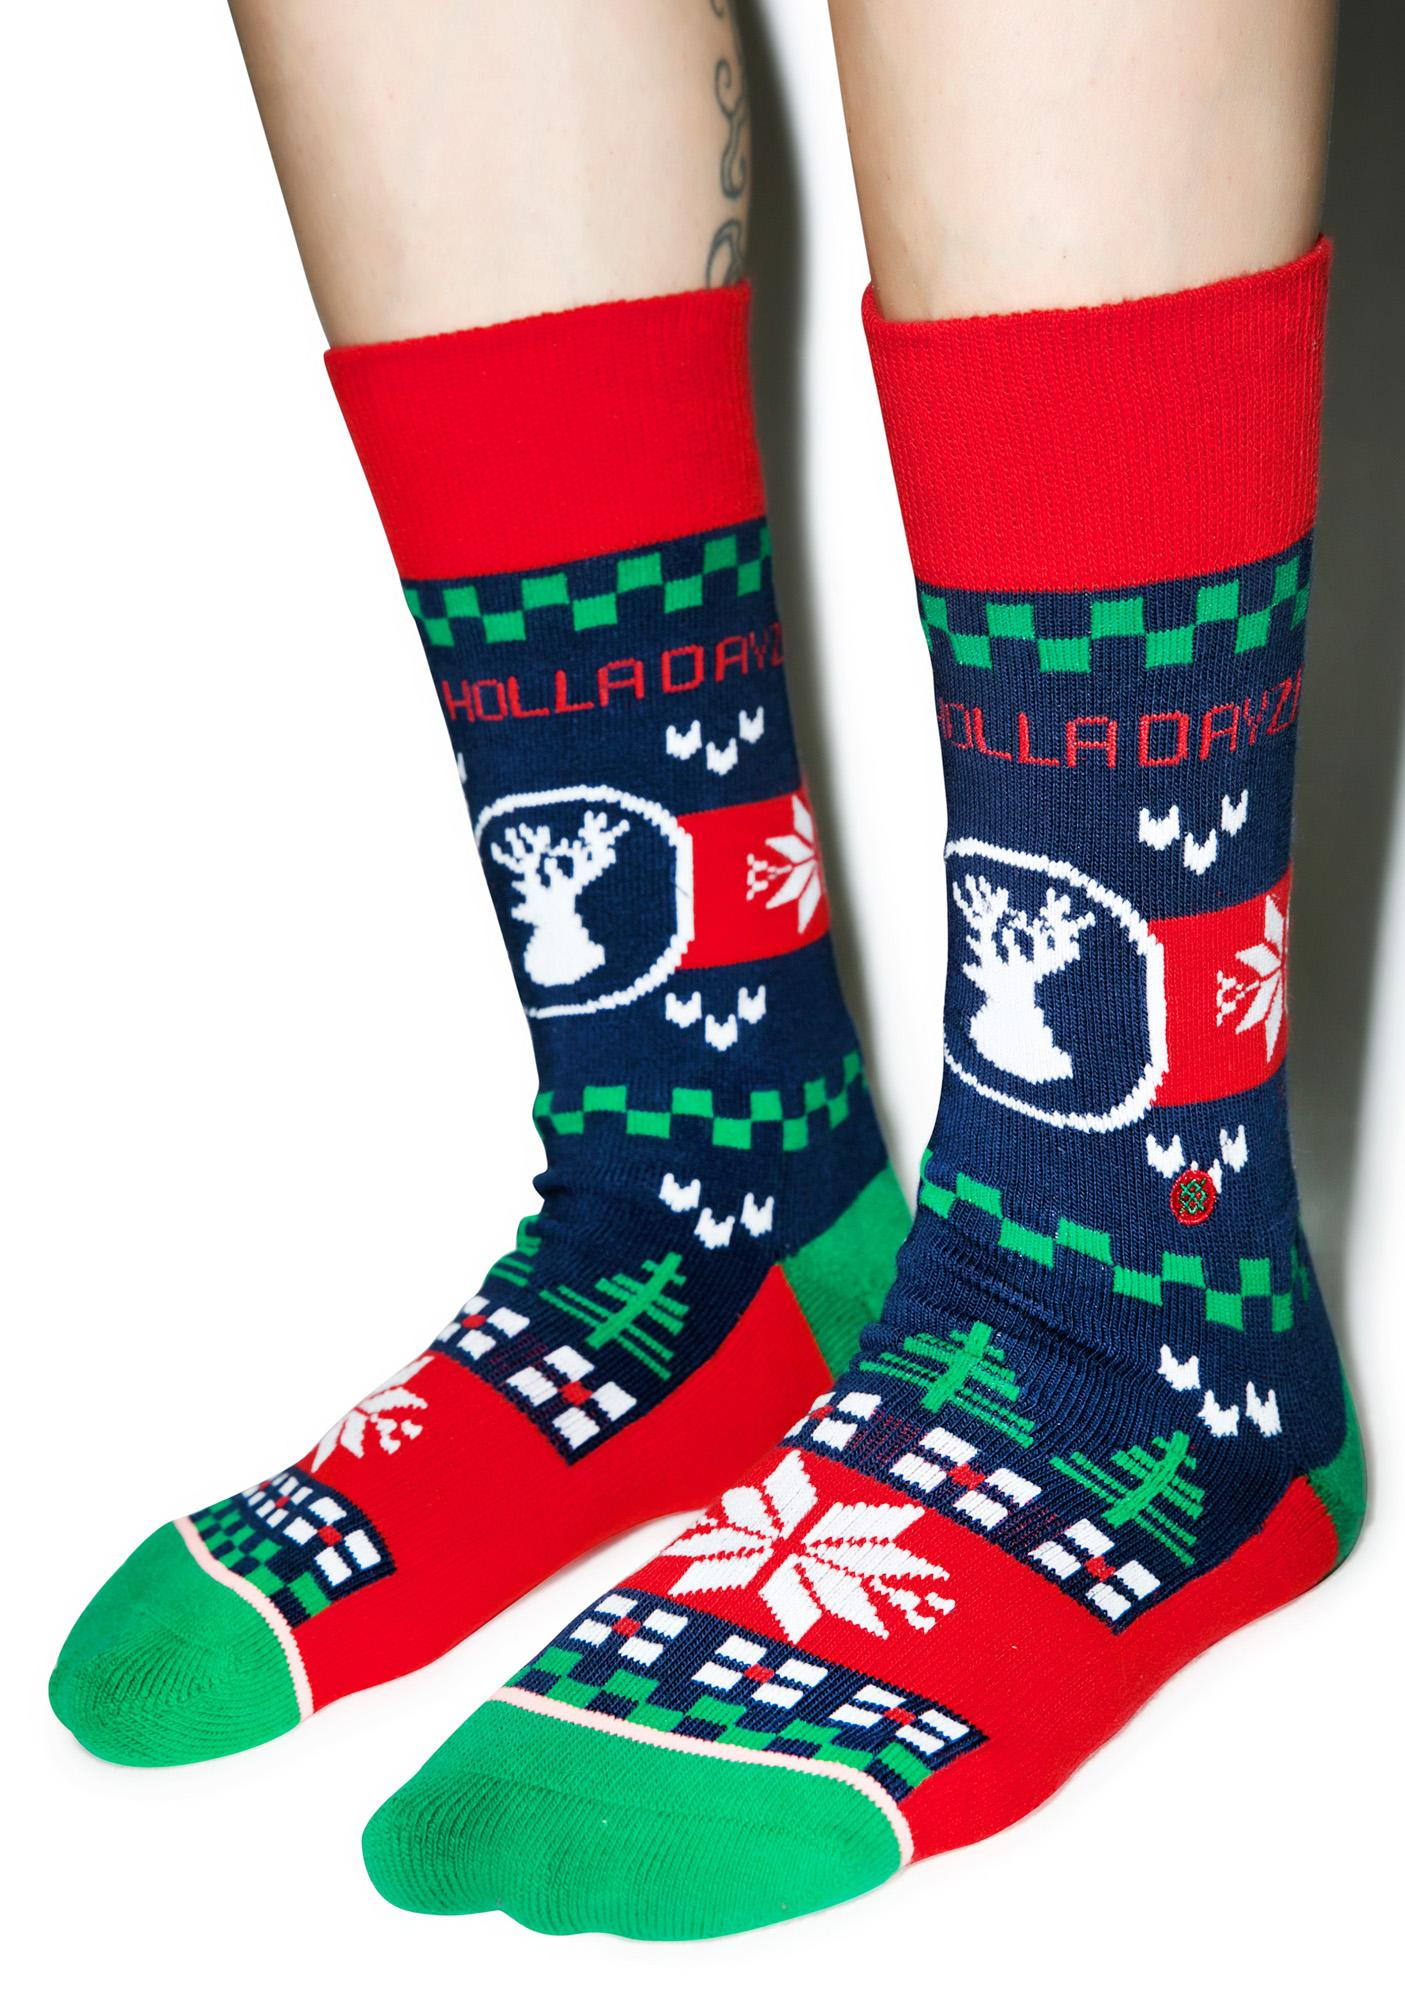 Stance Holladayze Socks